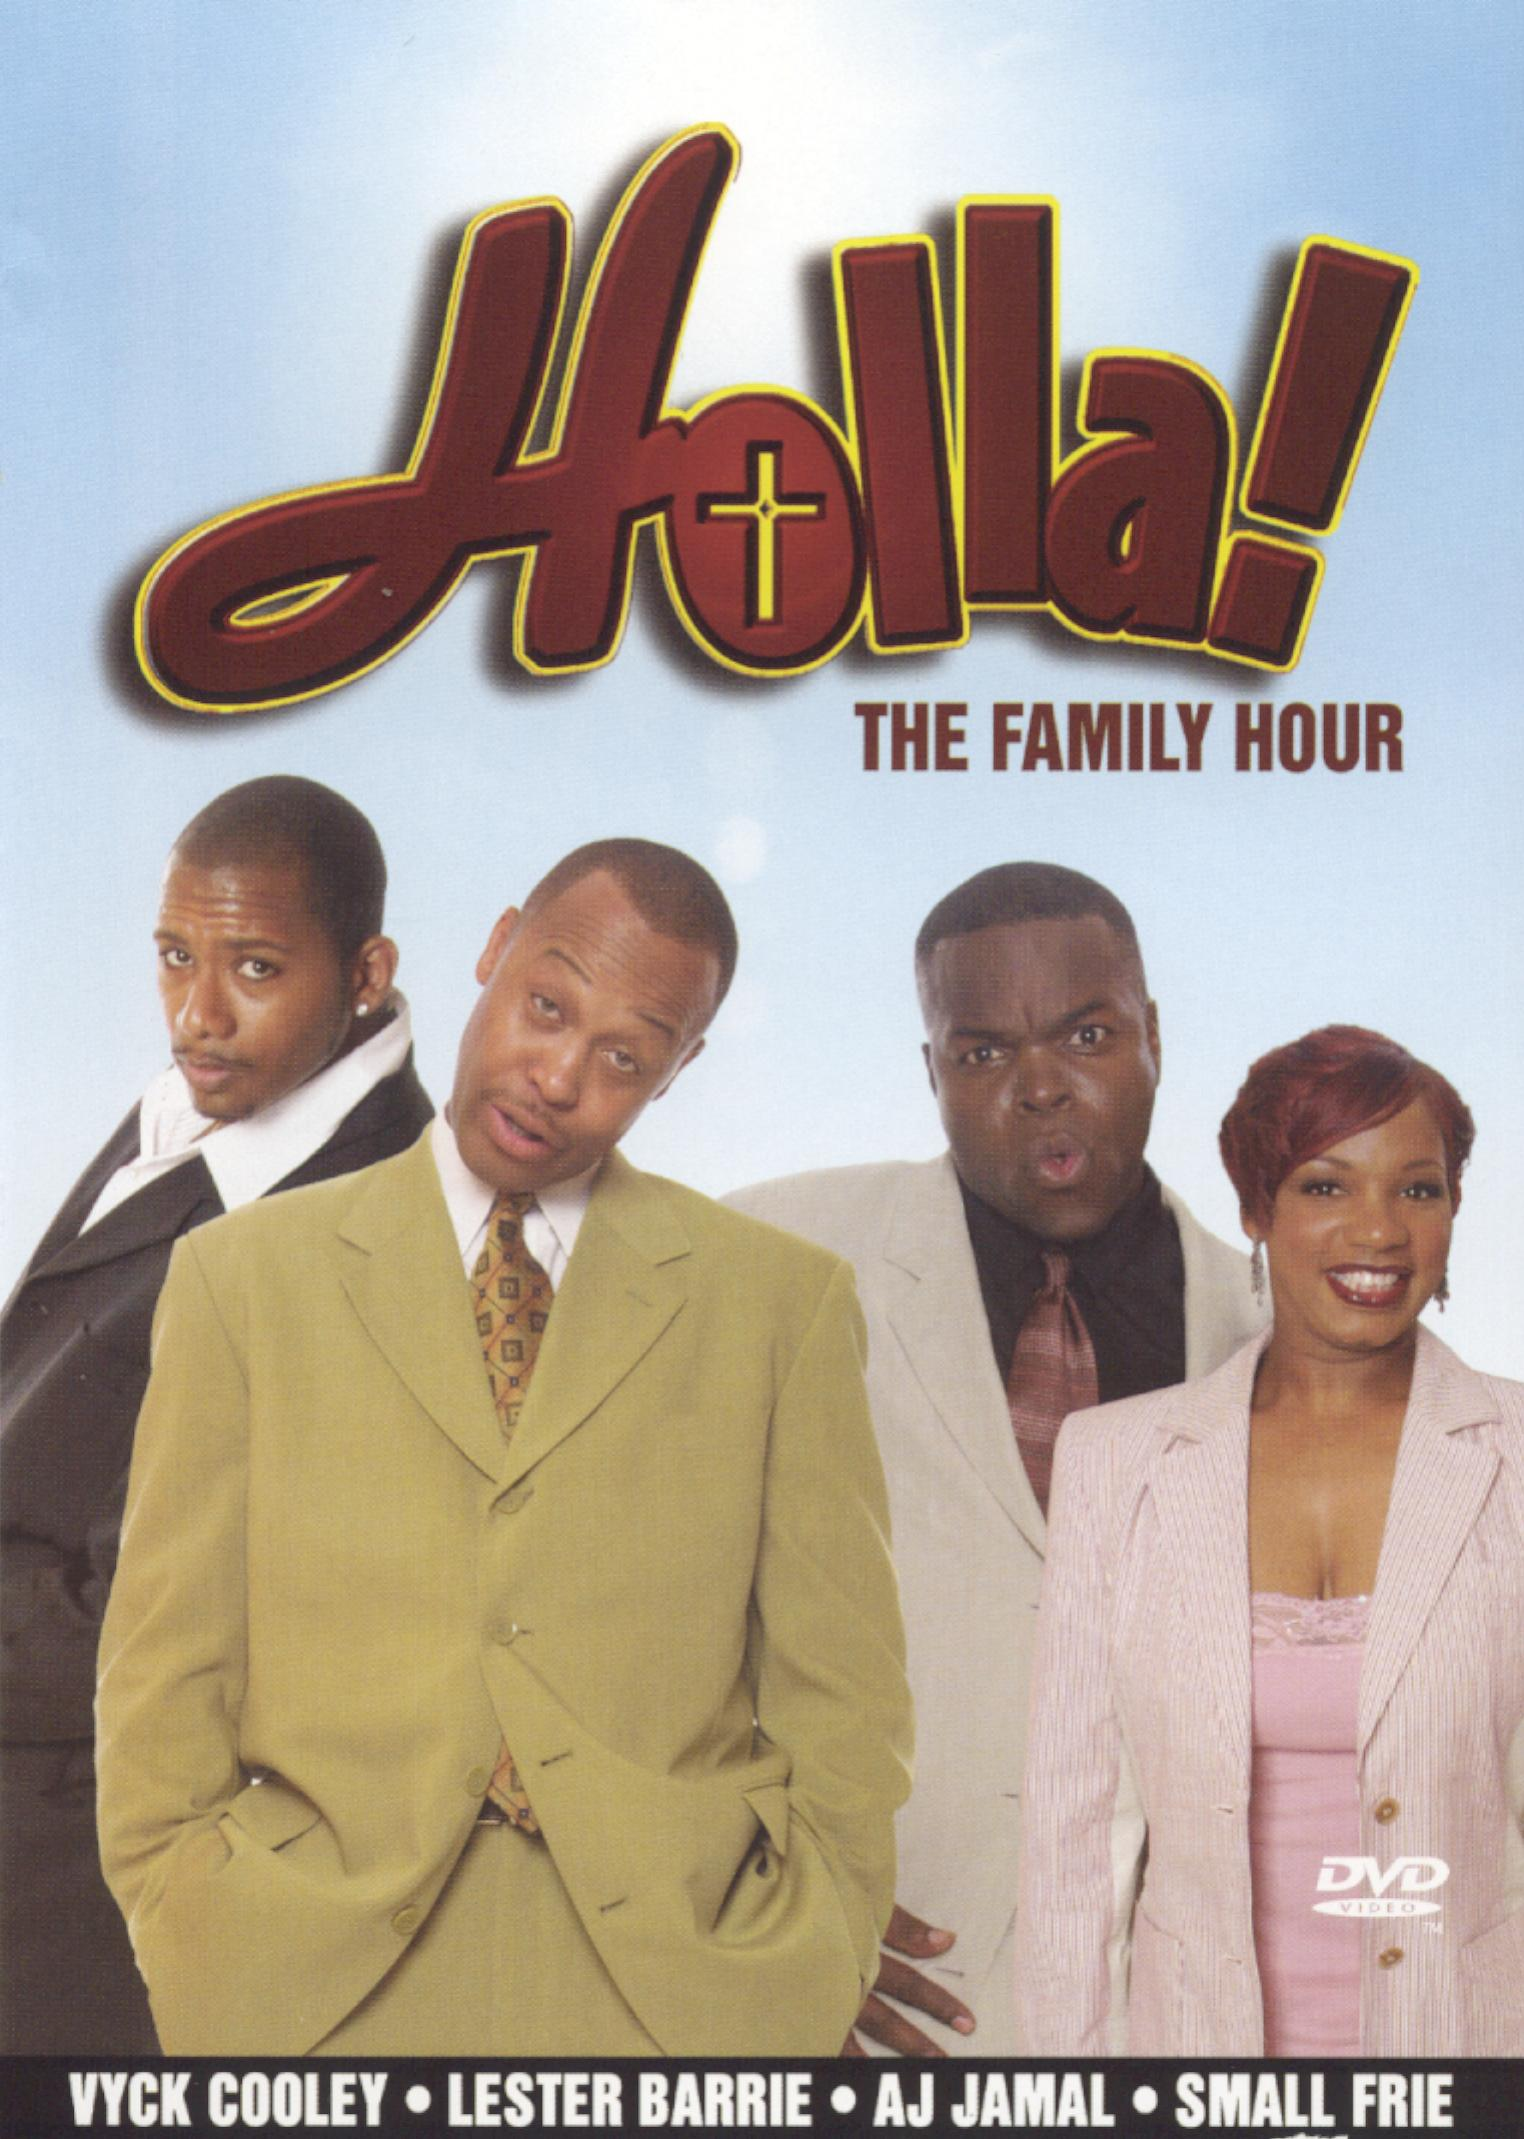 Holla! The Family Hour